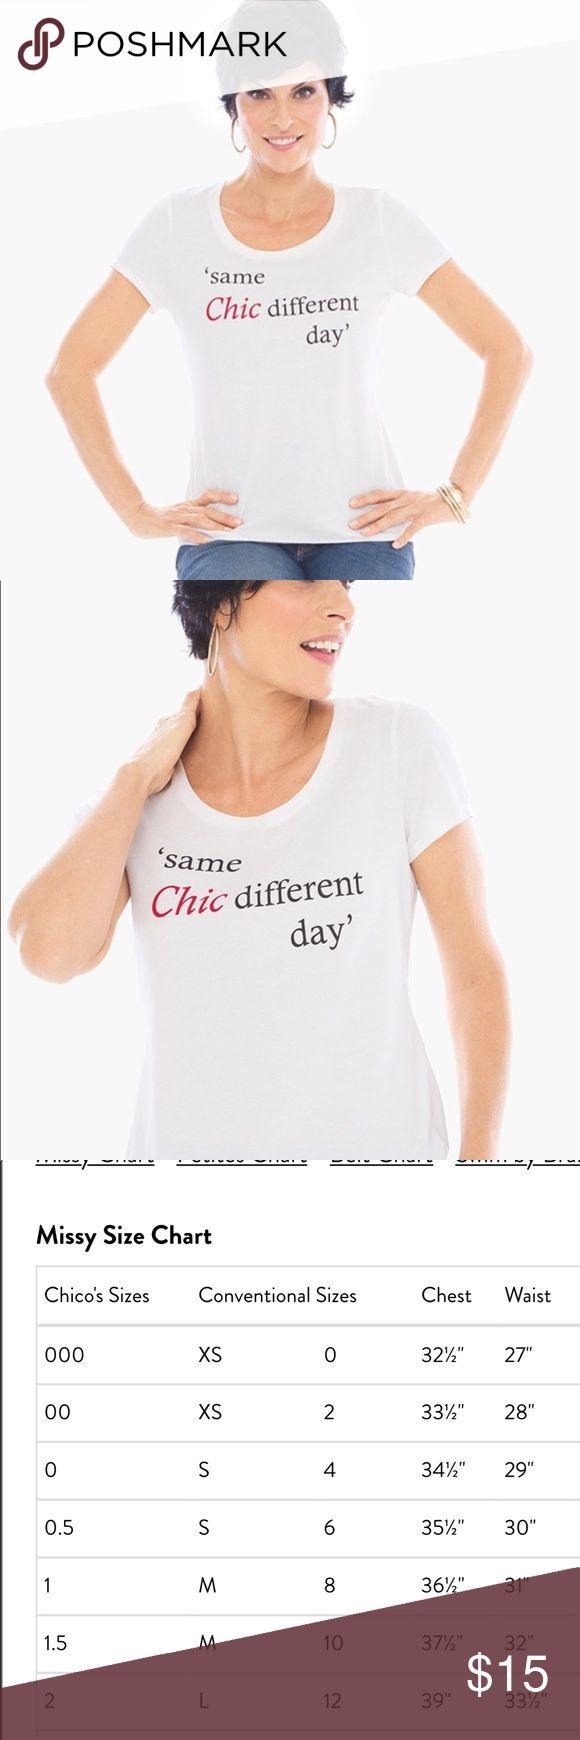 """NWT 'same chic different day' Shirt by Chicos ✨✨FINAL PRICE REDUCTION✨✨Cute phrase! Brand new, never worn. Size """"1"""" = Medium at Chico's! Chico's Tops"""